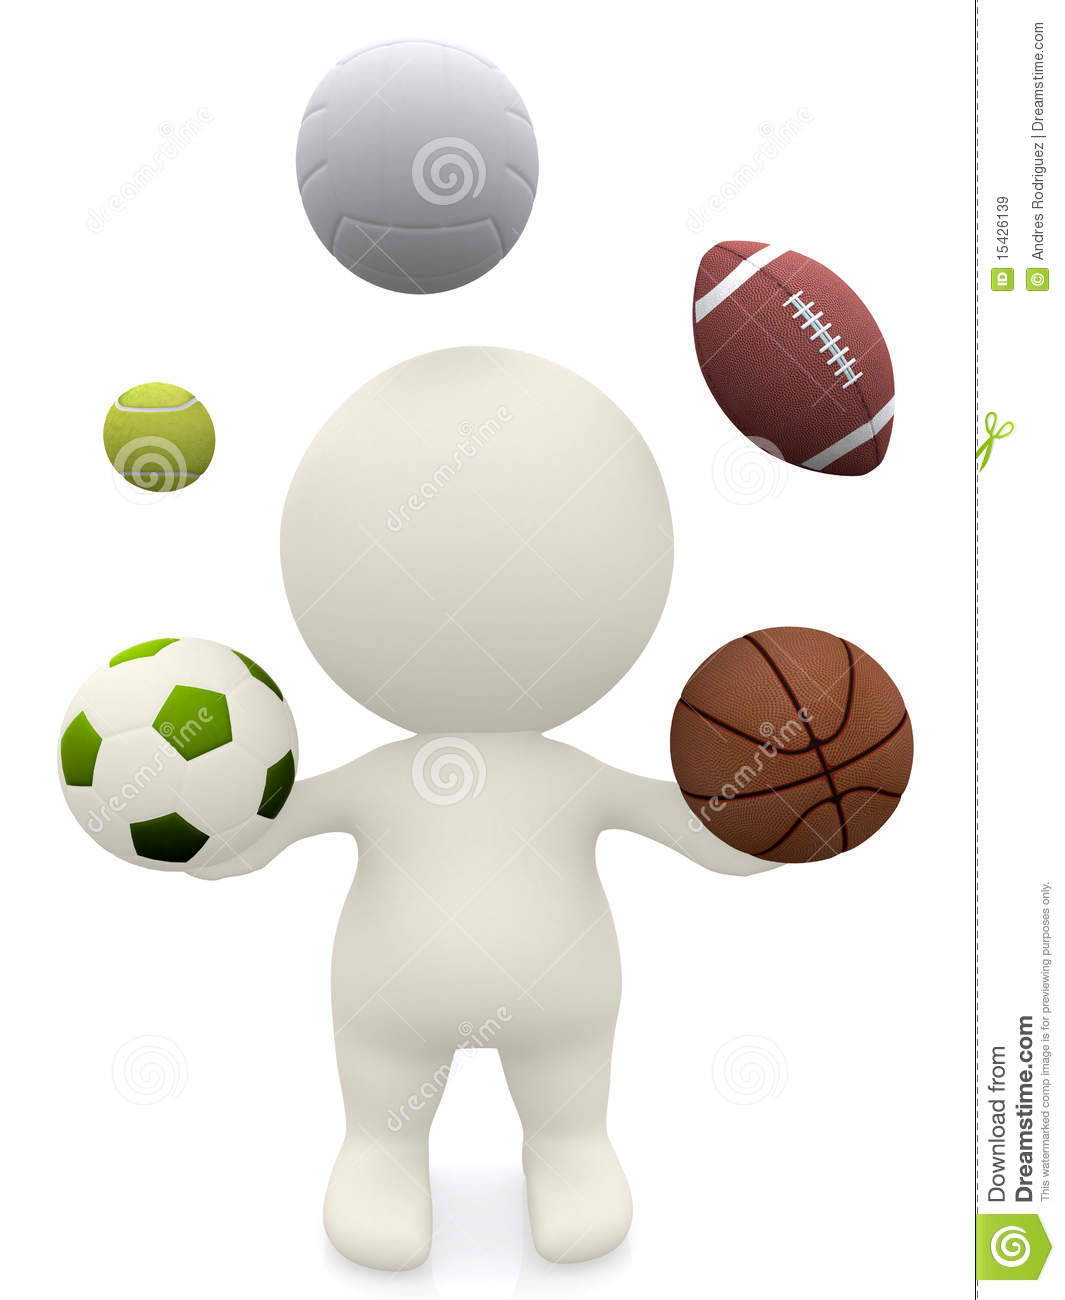 Graphic Stock Free Trial 3d Person Juggling With Sport Balls Stock Illustration